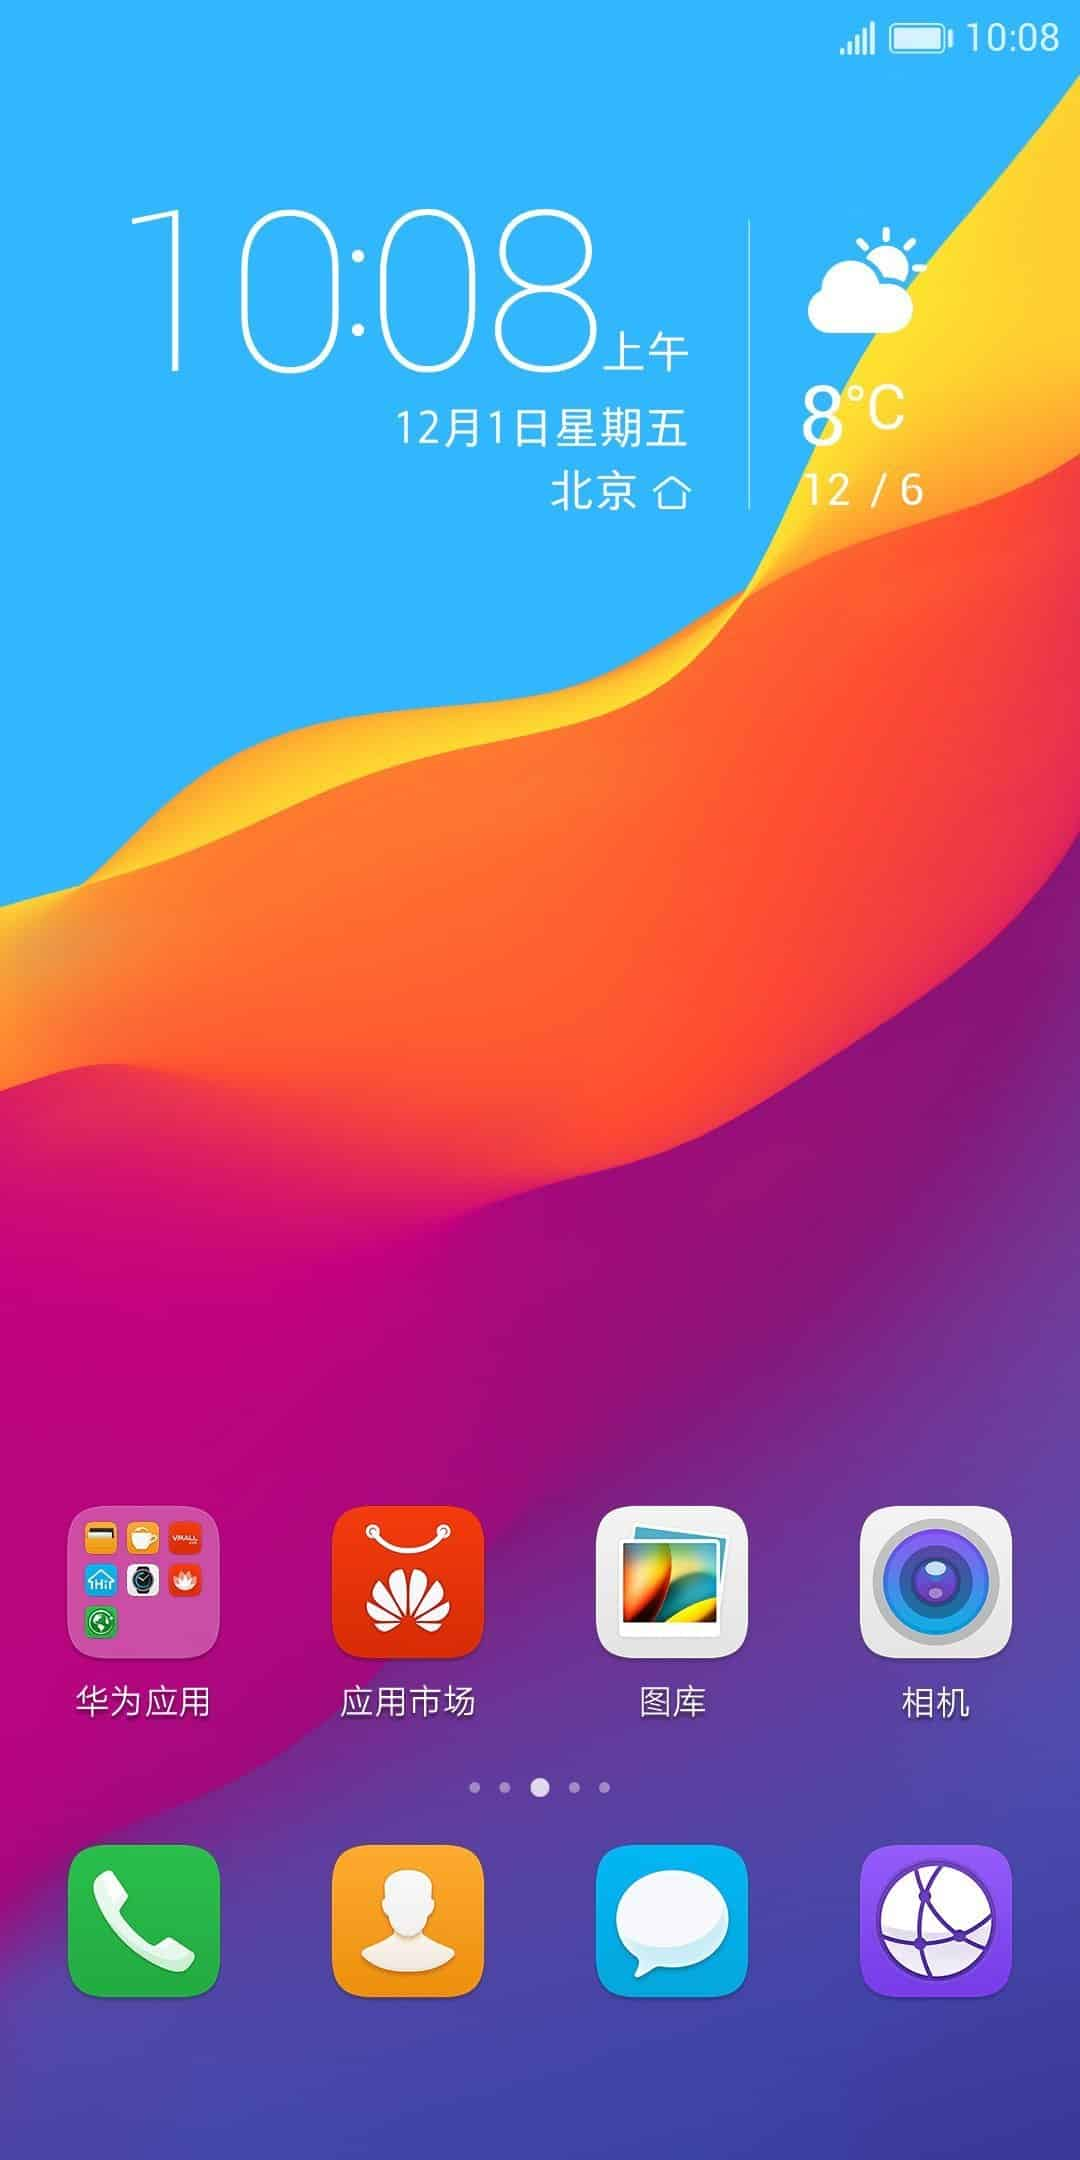 Rainbow wave Honor V10 2 - Download Huawei Honor V10 Stock Themes, EMUI 8.0 Themes